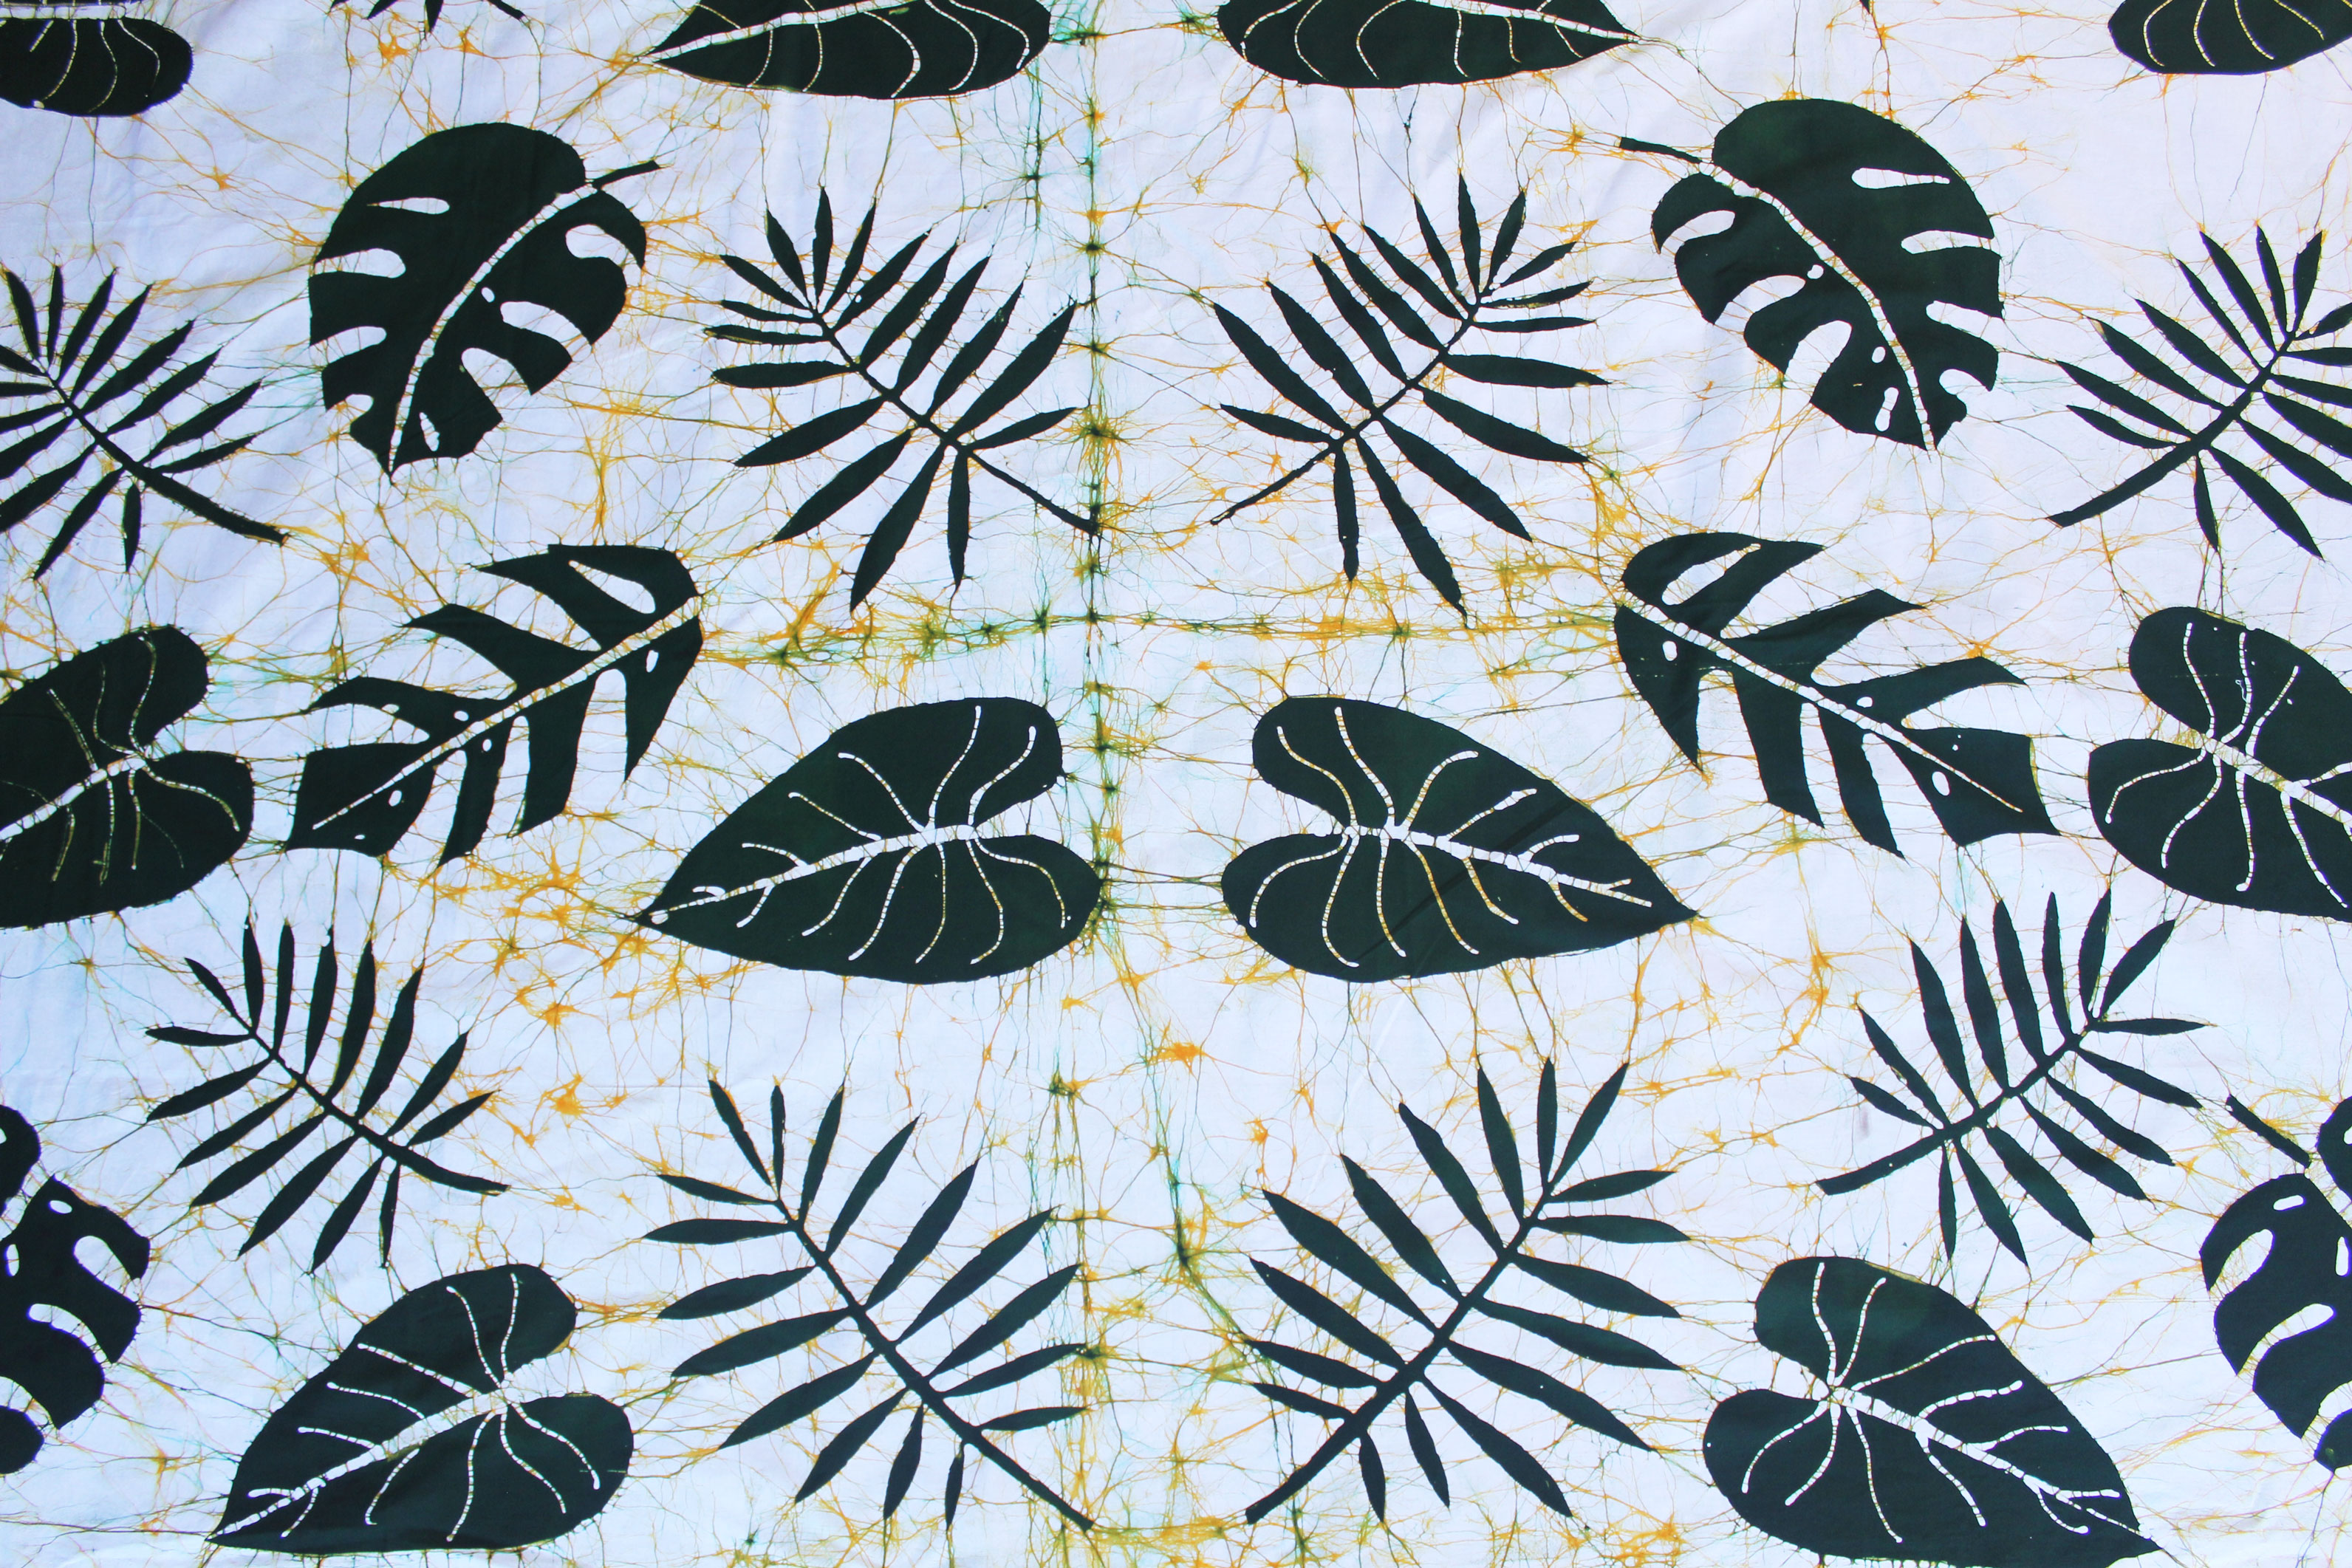 Batik with tropical leafs design.